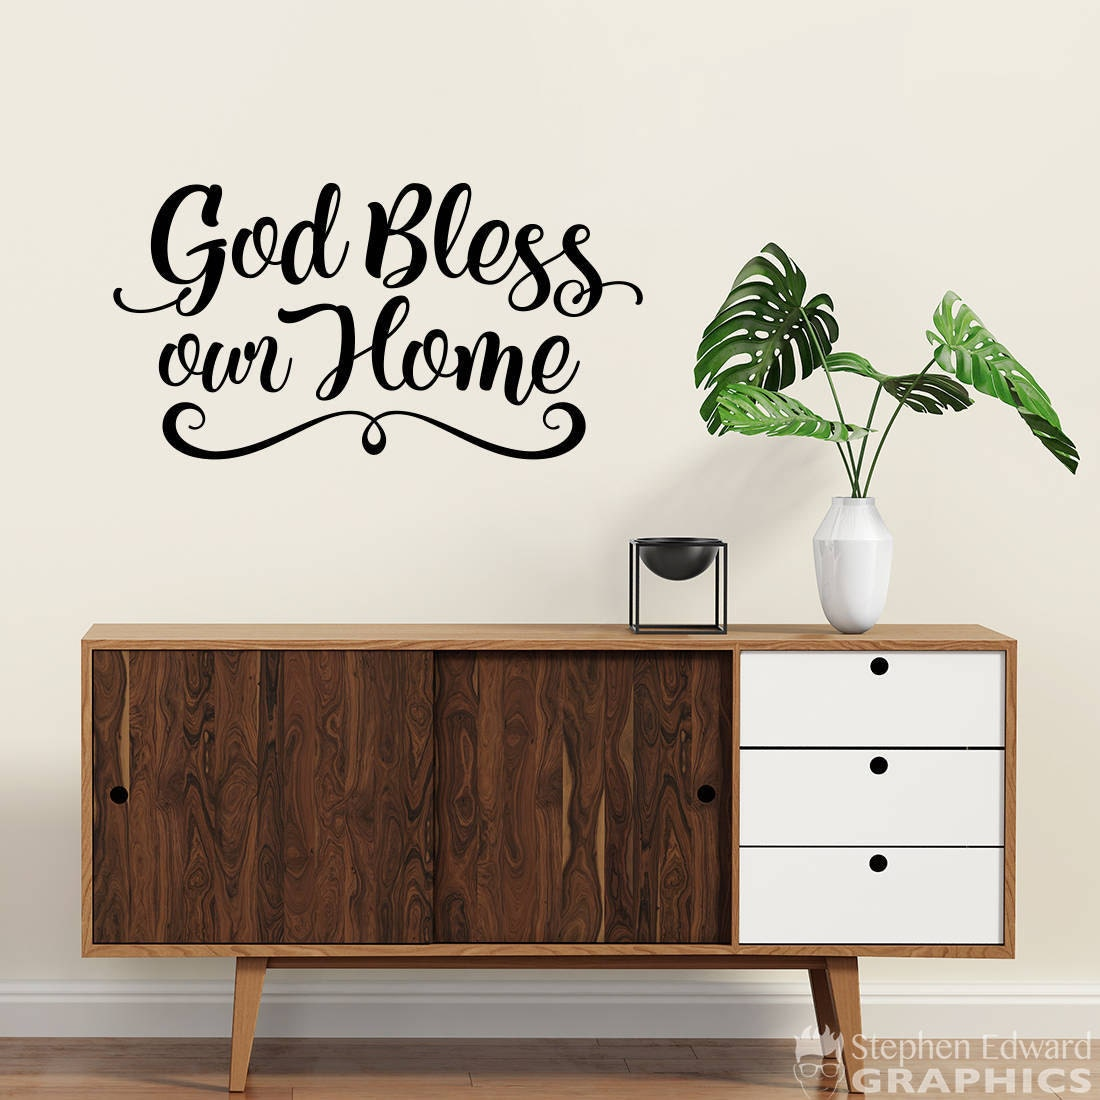 god bless our home decal home wall decor bless wall decal. Black Bedroom Furniture Sets. Home Design Ideas